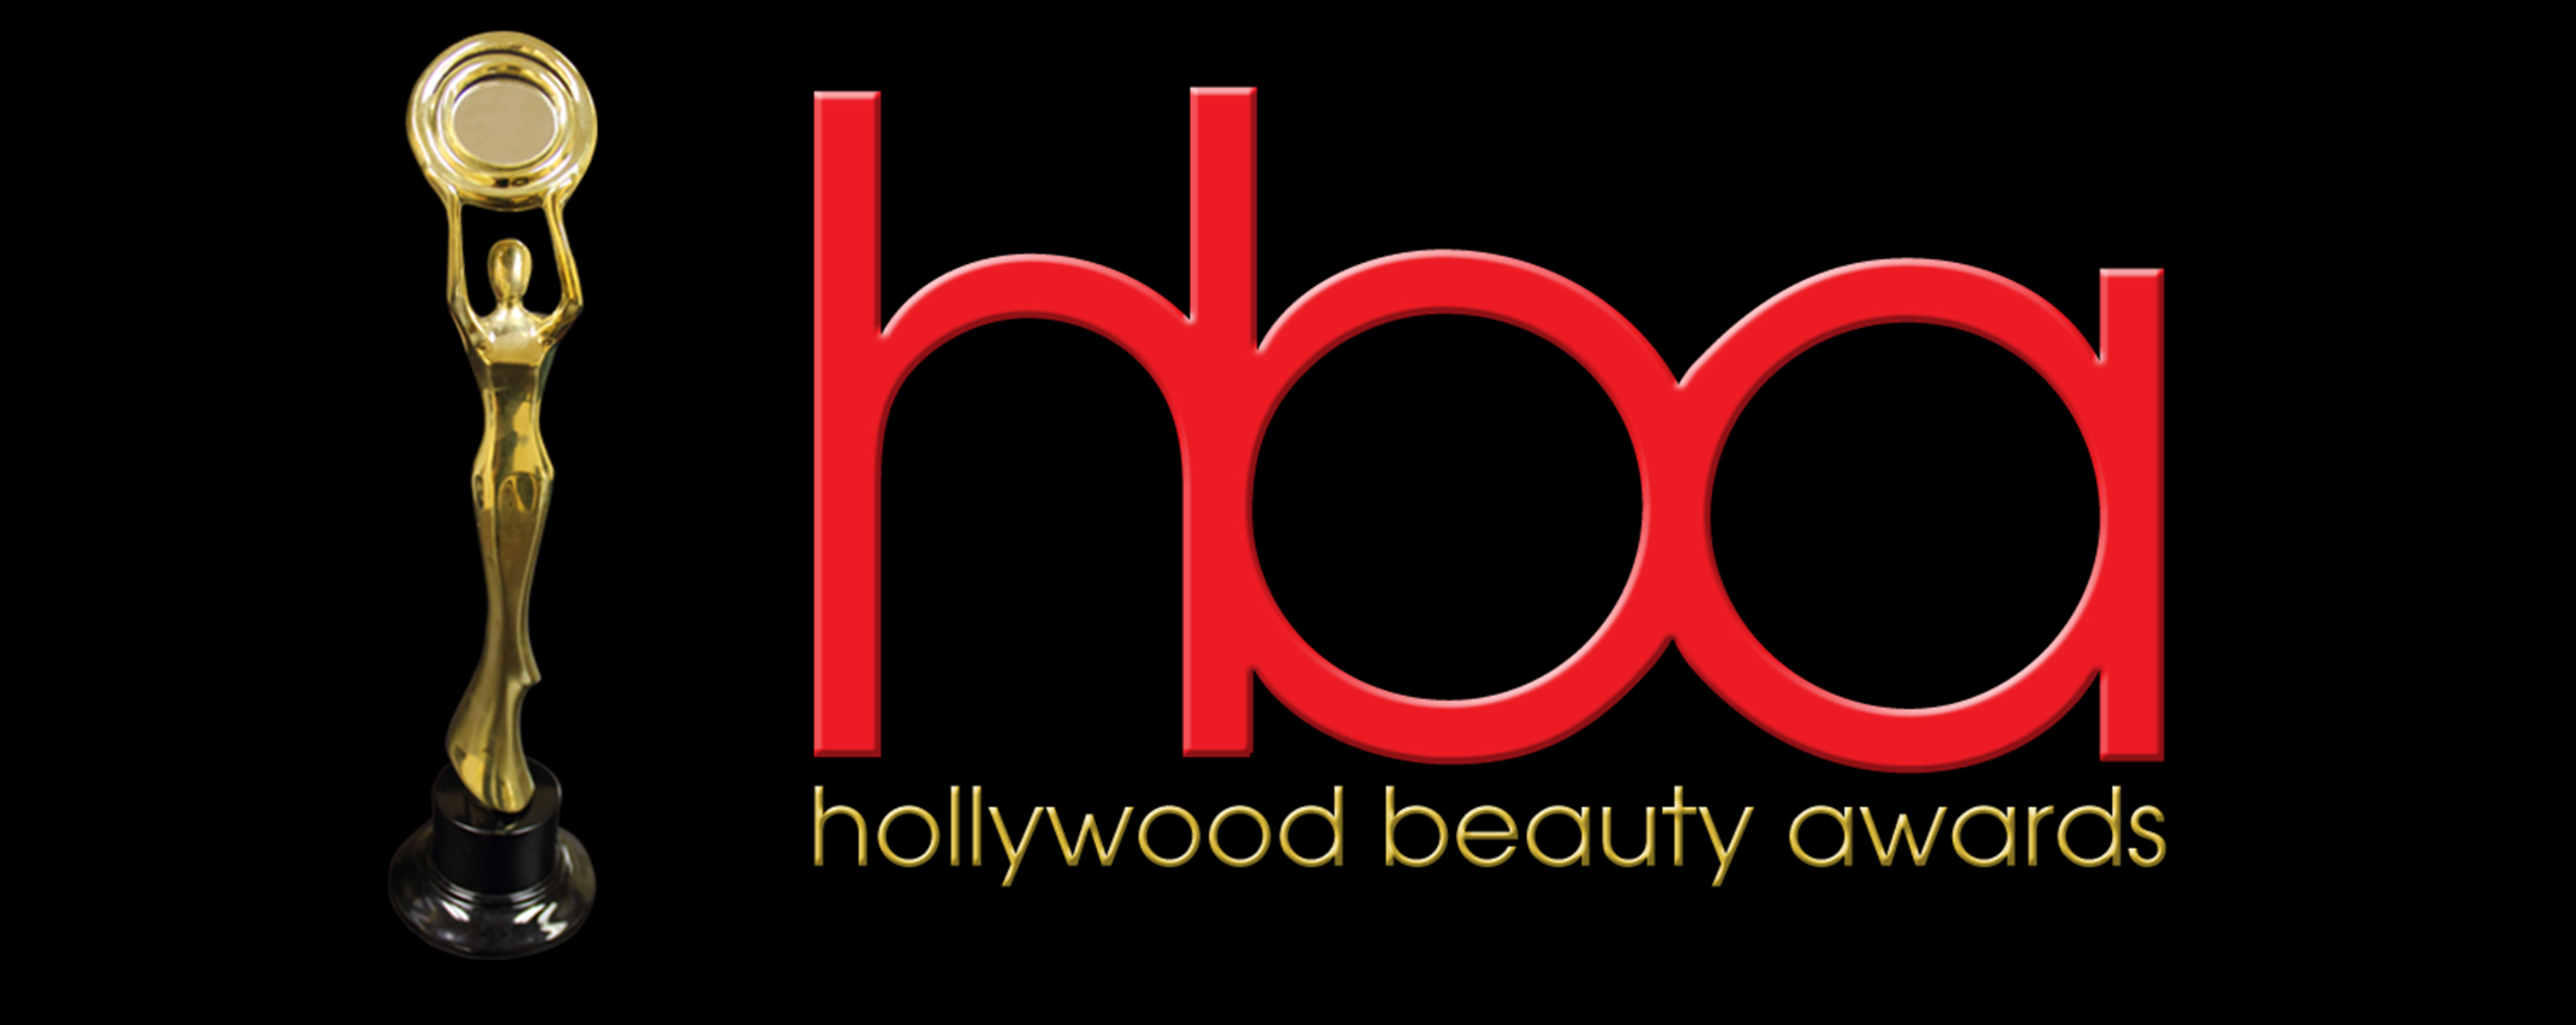 2nd Hollywood Beauty Awards - Johnny Depp, Jon Voight, Melanie Griffith